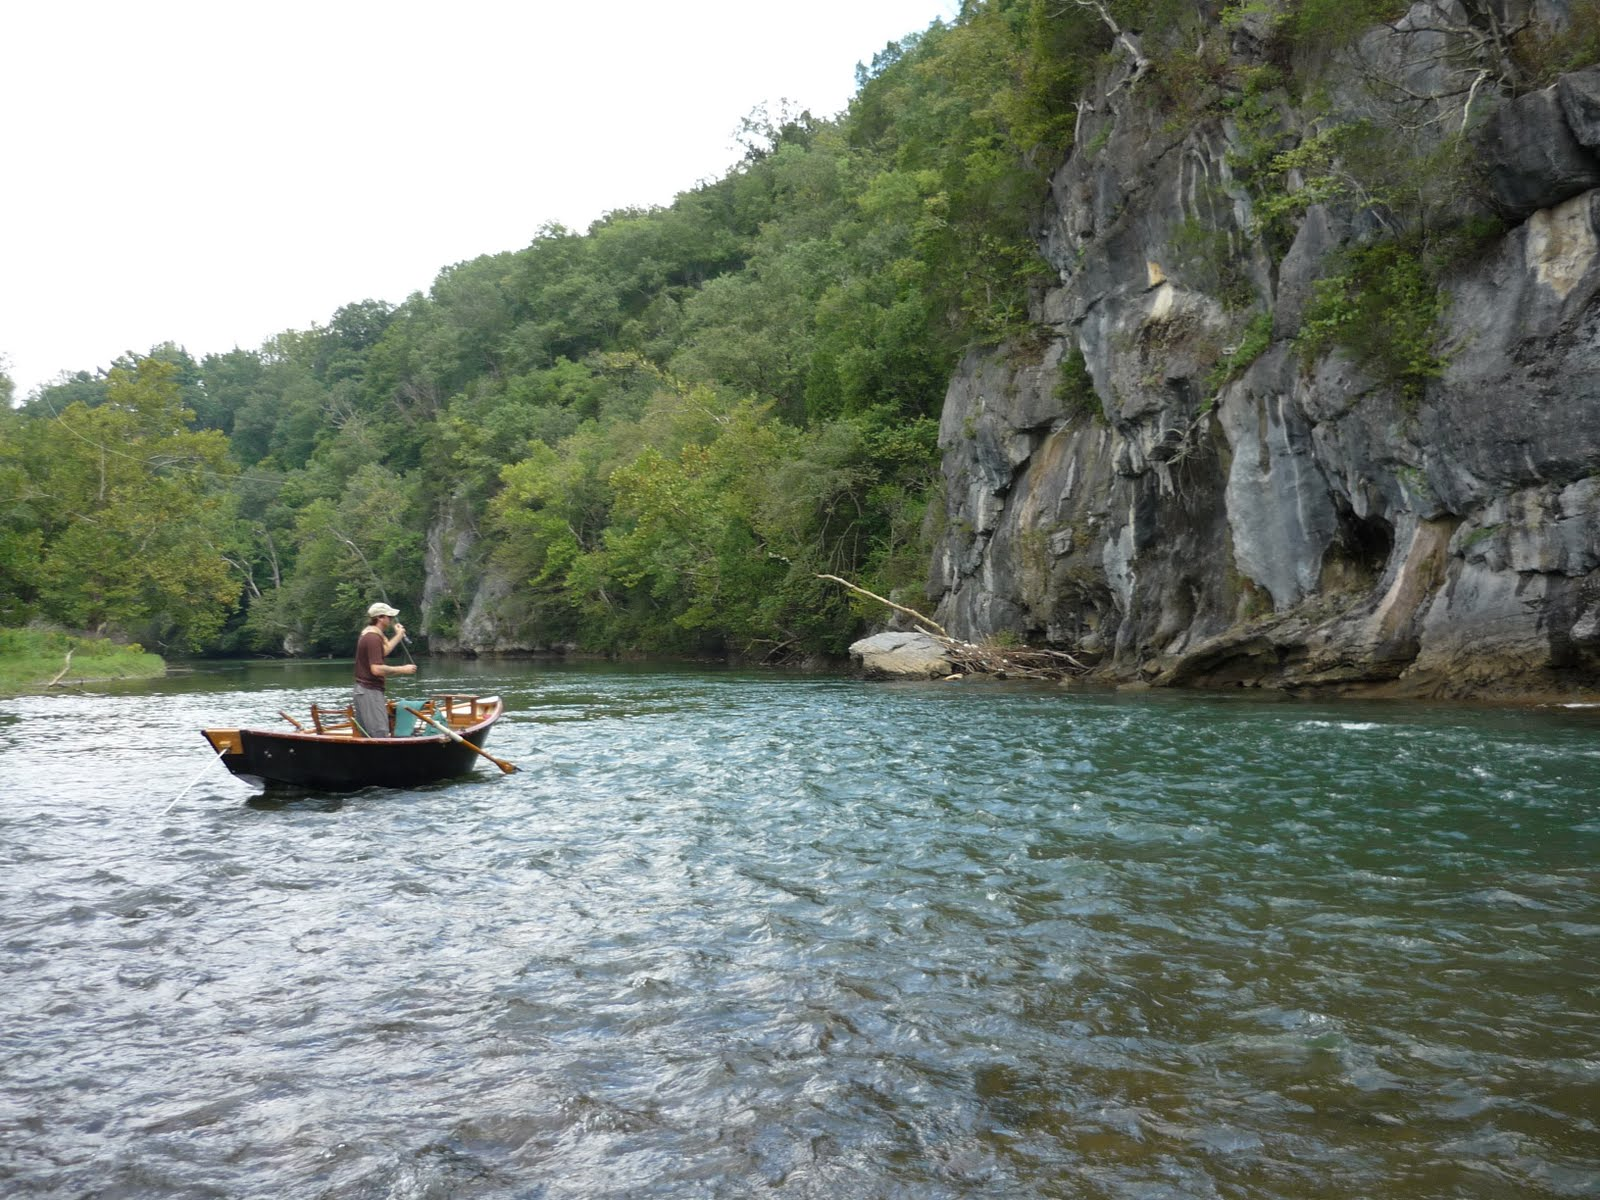 Peter 39 s fly fishing adventures floating the holston and for Trout fishing in tennessee